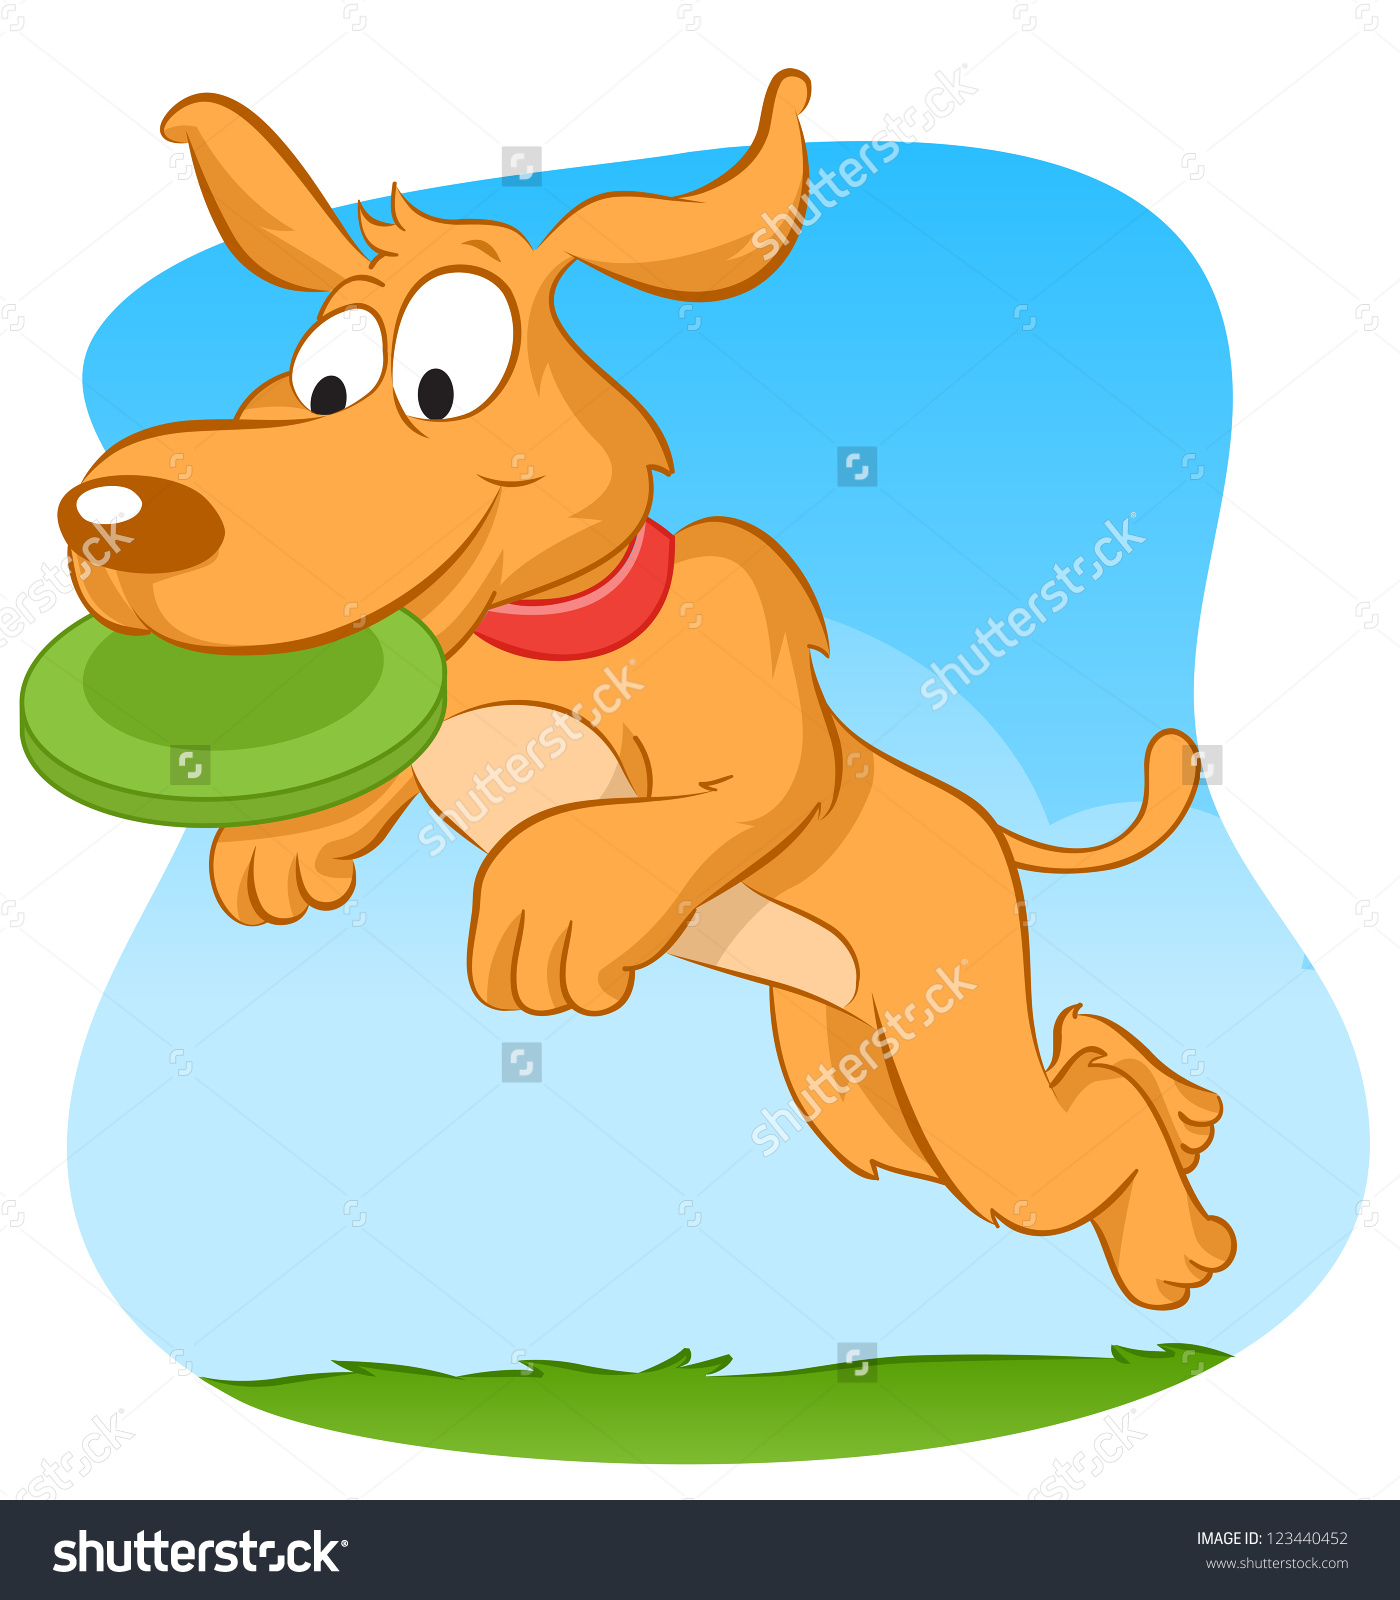 Real dog jumping clipart png freeuse stock Dog Jumping Catching Green Frisbee Stock Vector 123440452 ... png freeuse stock